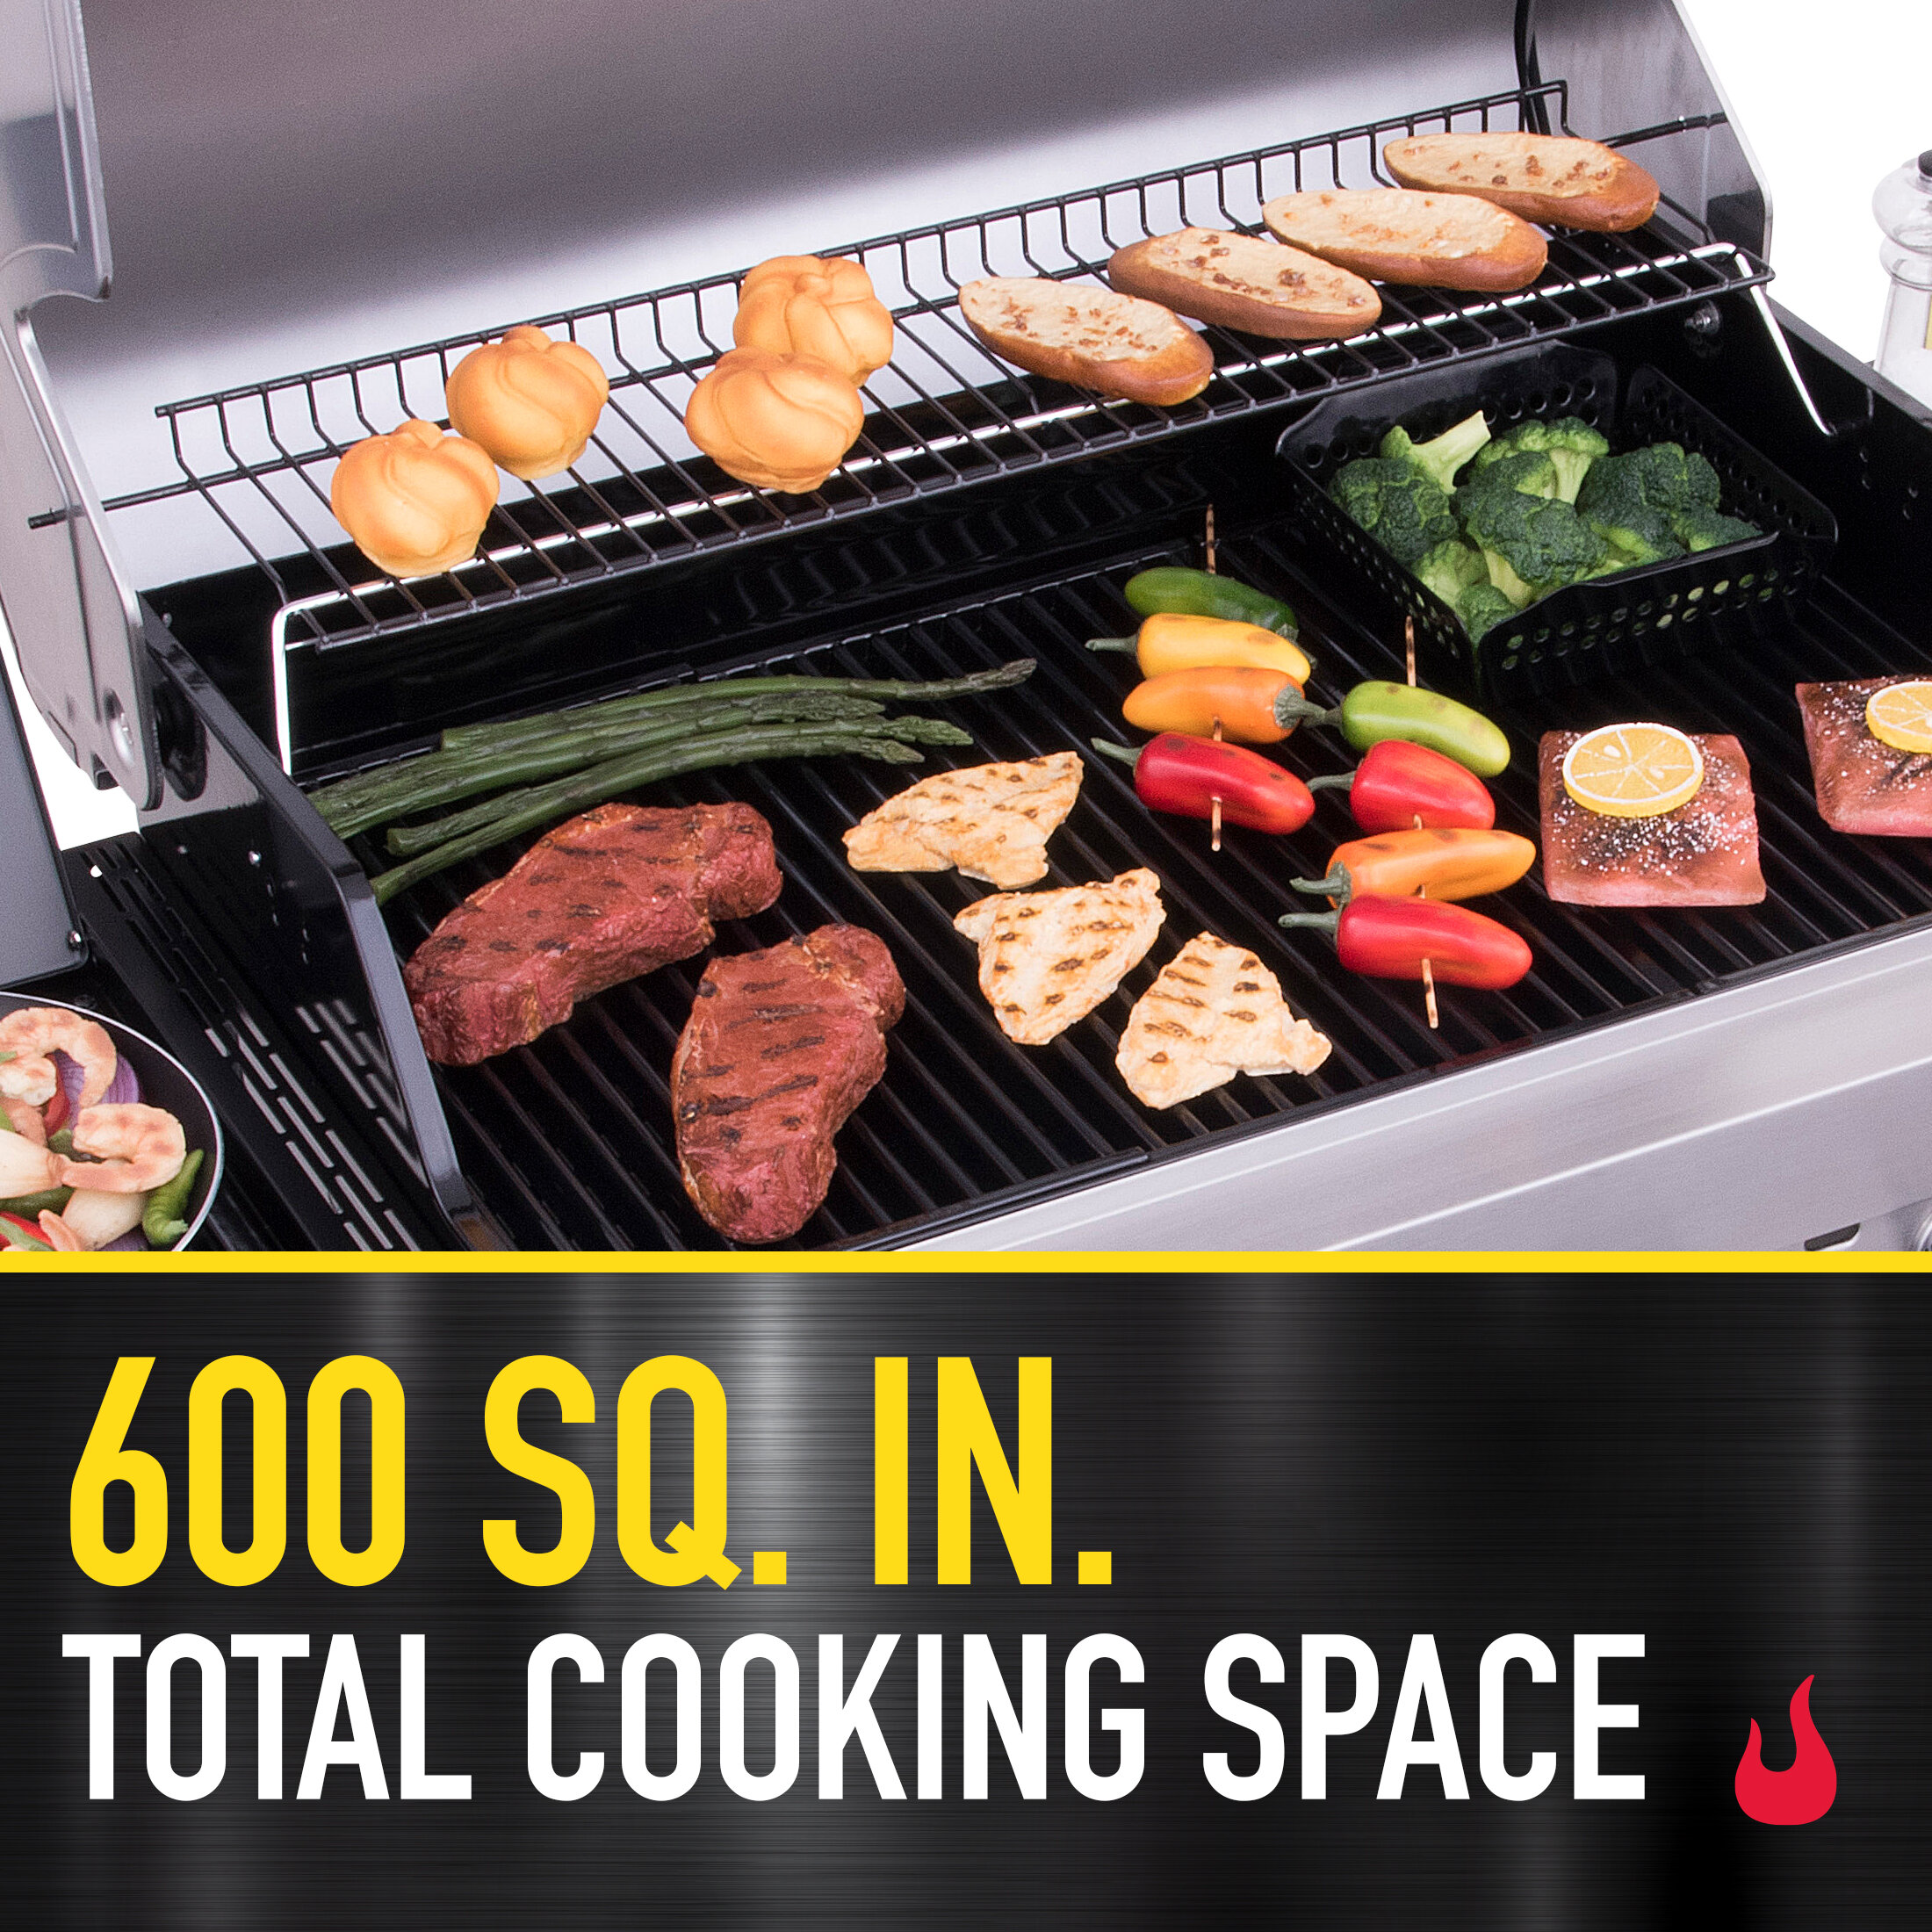 Total Cooking Space